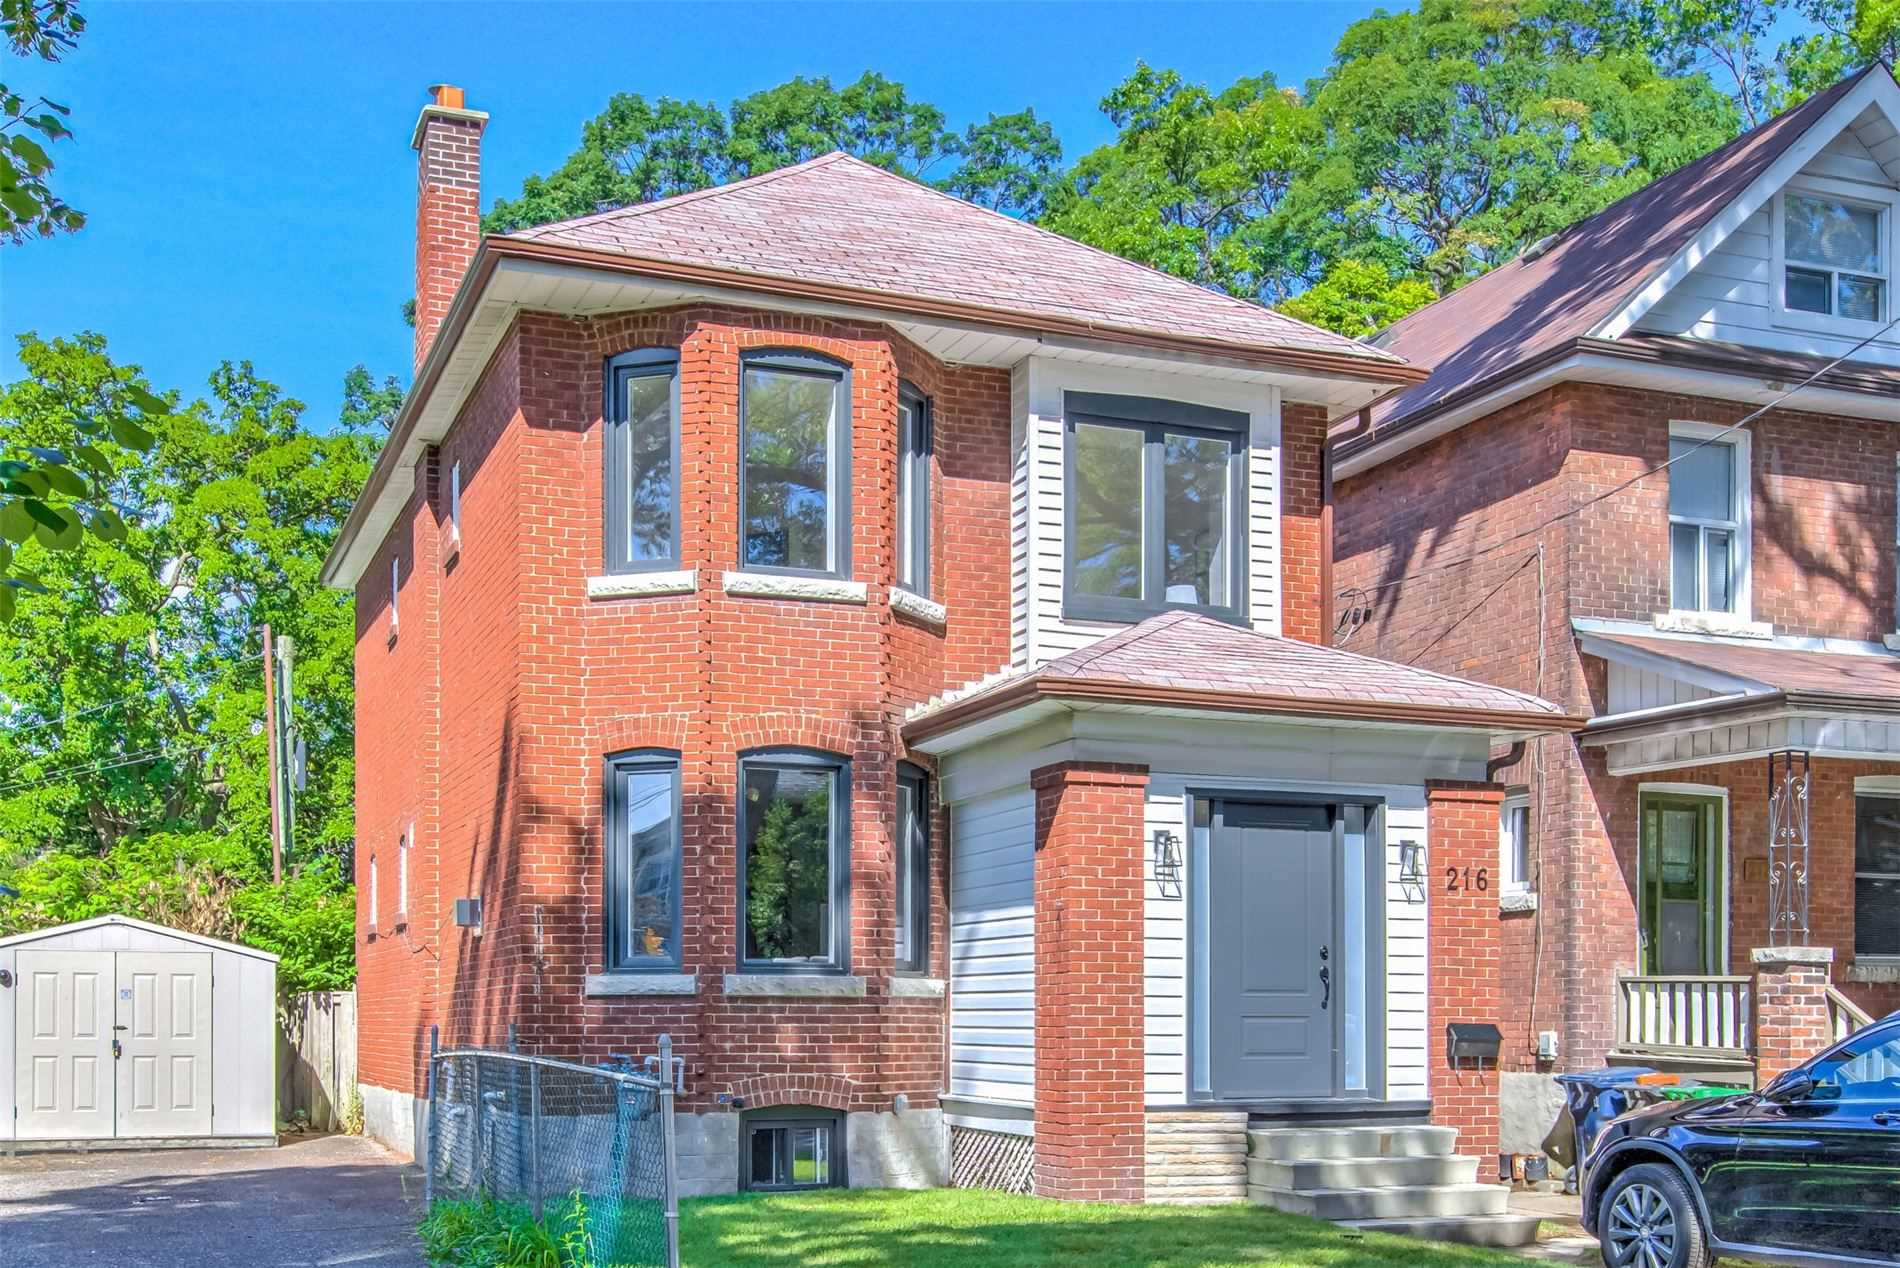 Detached house For Sale In Toronto - 216 Evelyn Ave, Toronto, Ontario, Canada M6P2Z9 , 4 Bedrooms Bedrooms, ,4 BathroomsBathrooms,Detached,For Sale,Evelyn